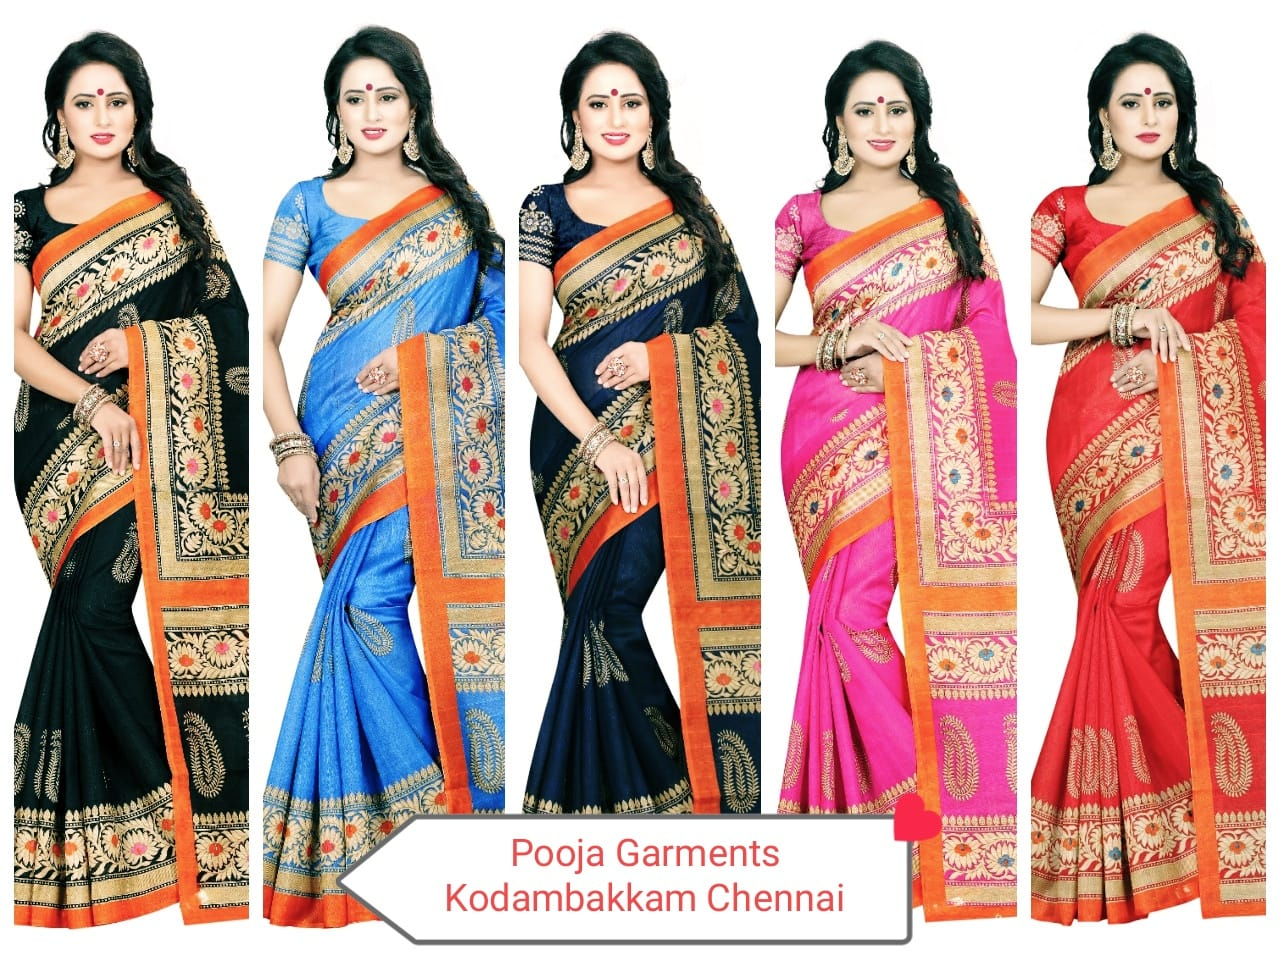 buy online georgette sarees in chennai